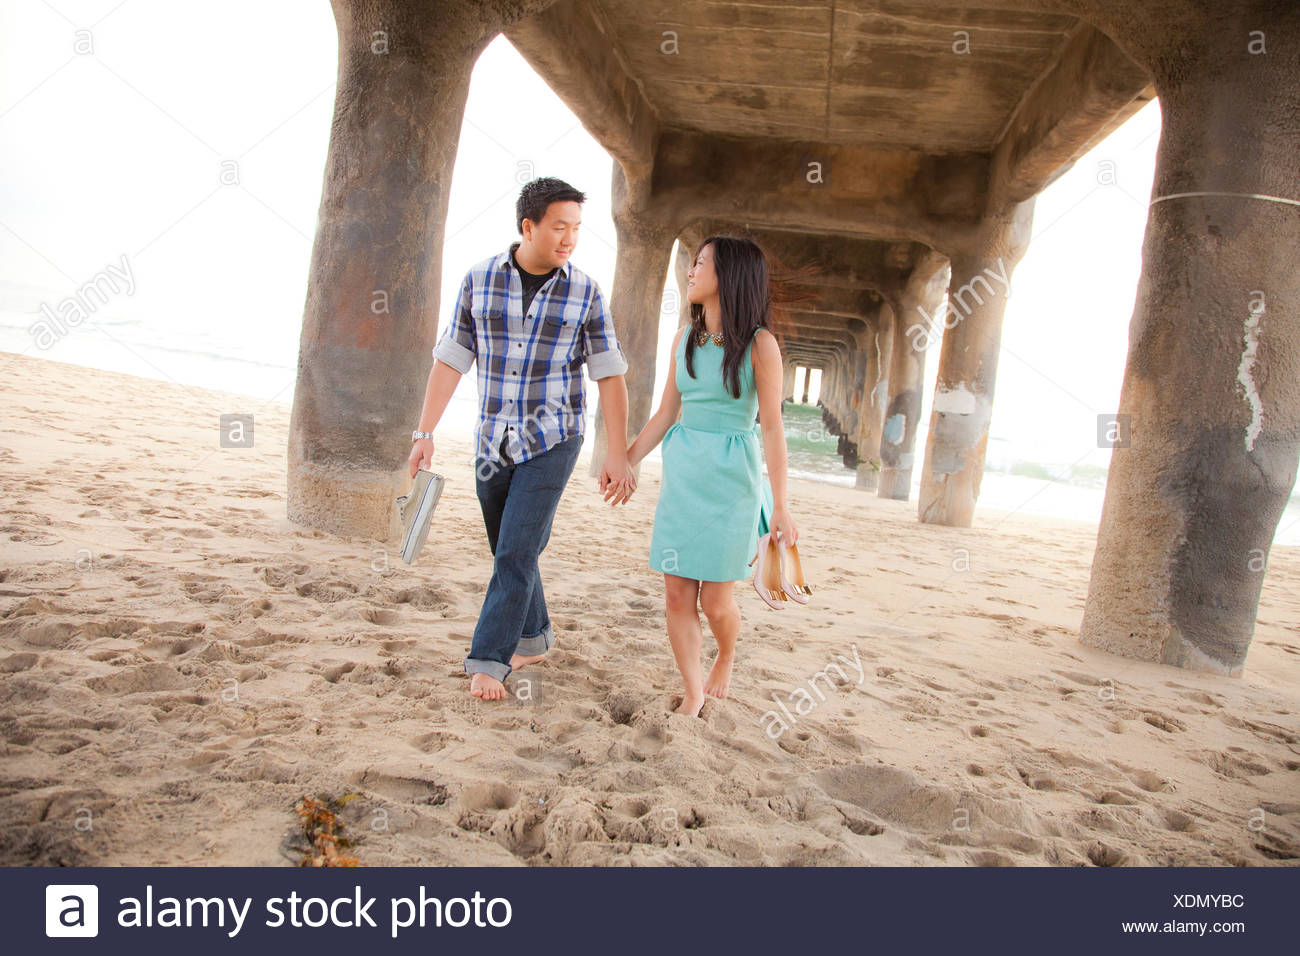 Couple holding hands, walking barefoot  under a pier - Stock Image